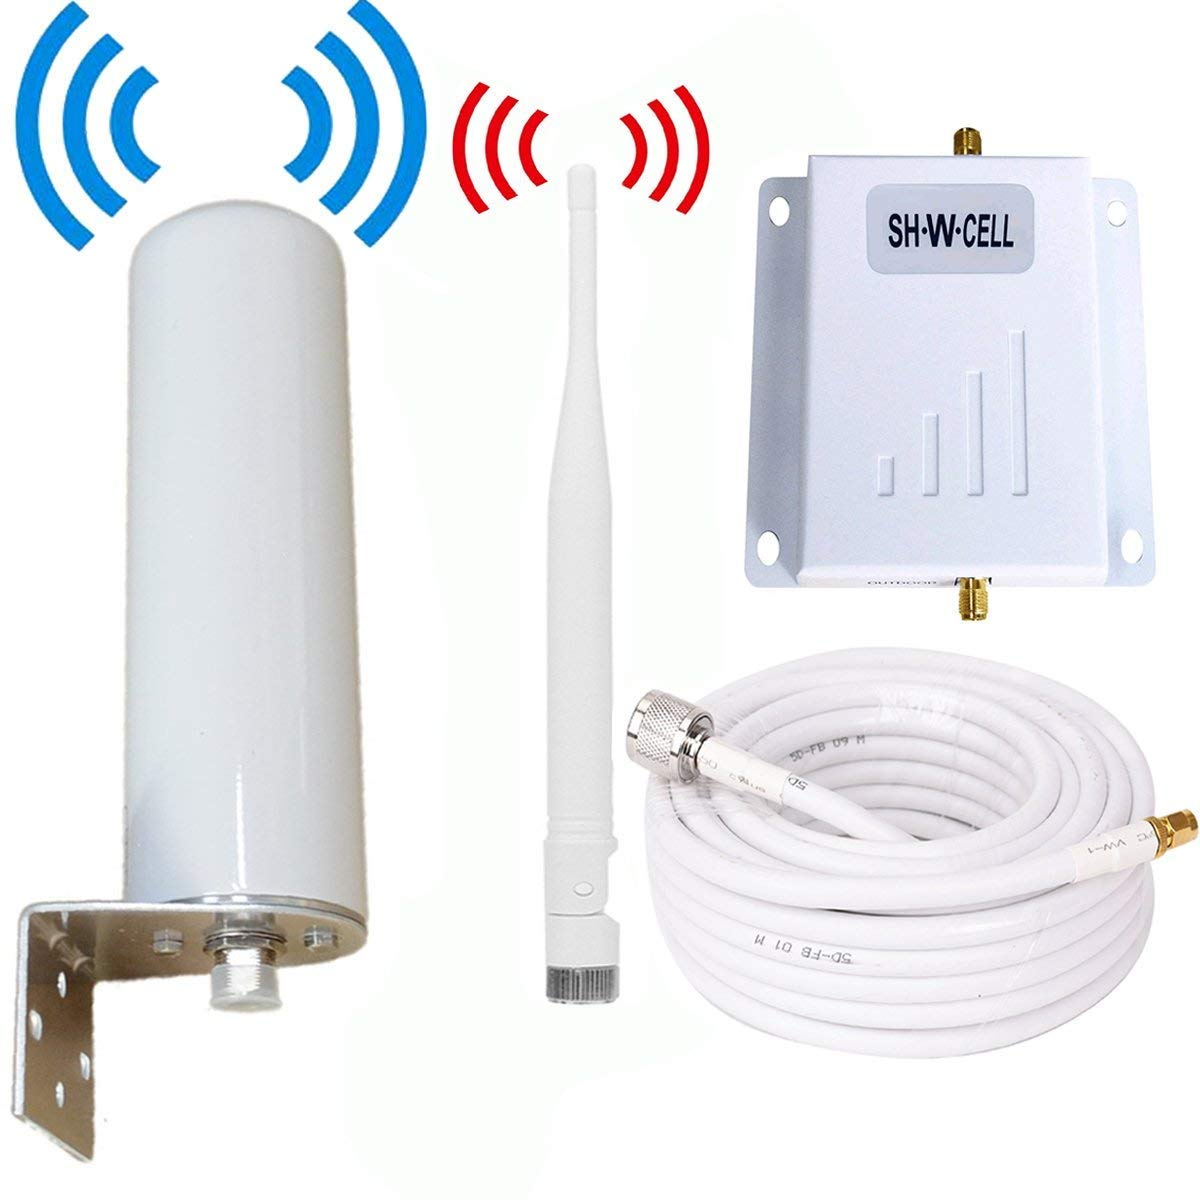 Verizon Cell Phone Signal Booster 4G LTE Cell Signal Booster Verizon 700Mhz FDD Band13 Mobile Signal Booster Cell Phone Signal Amplifier Repeater with Indoor Whip+Outdoor Omni Antennas Kits for Home by SH·W·CELL